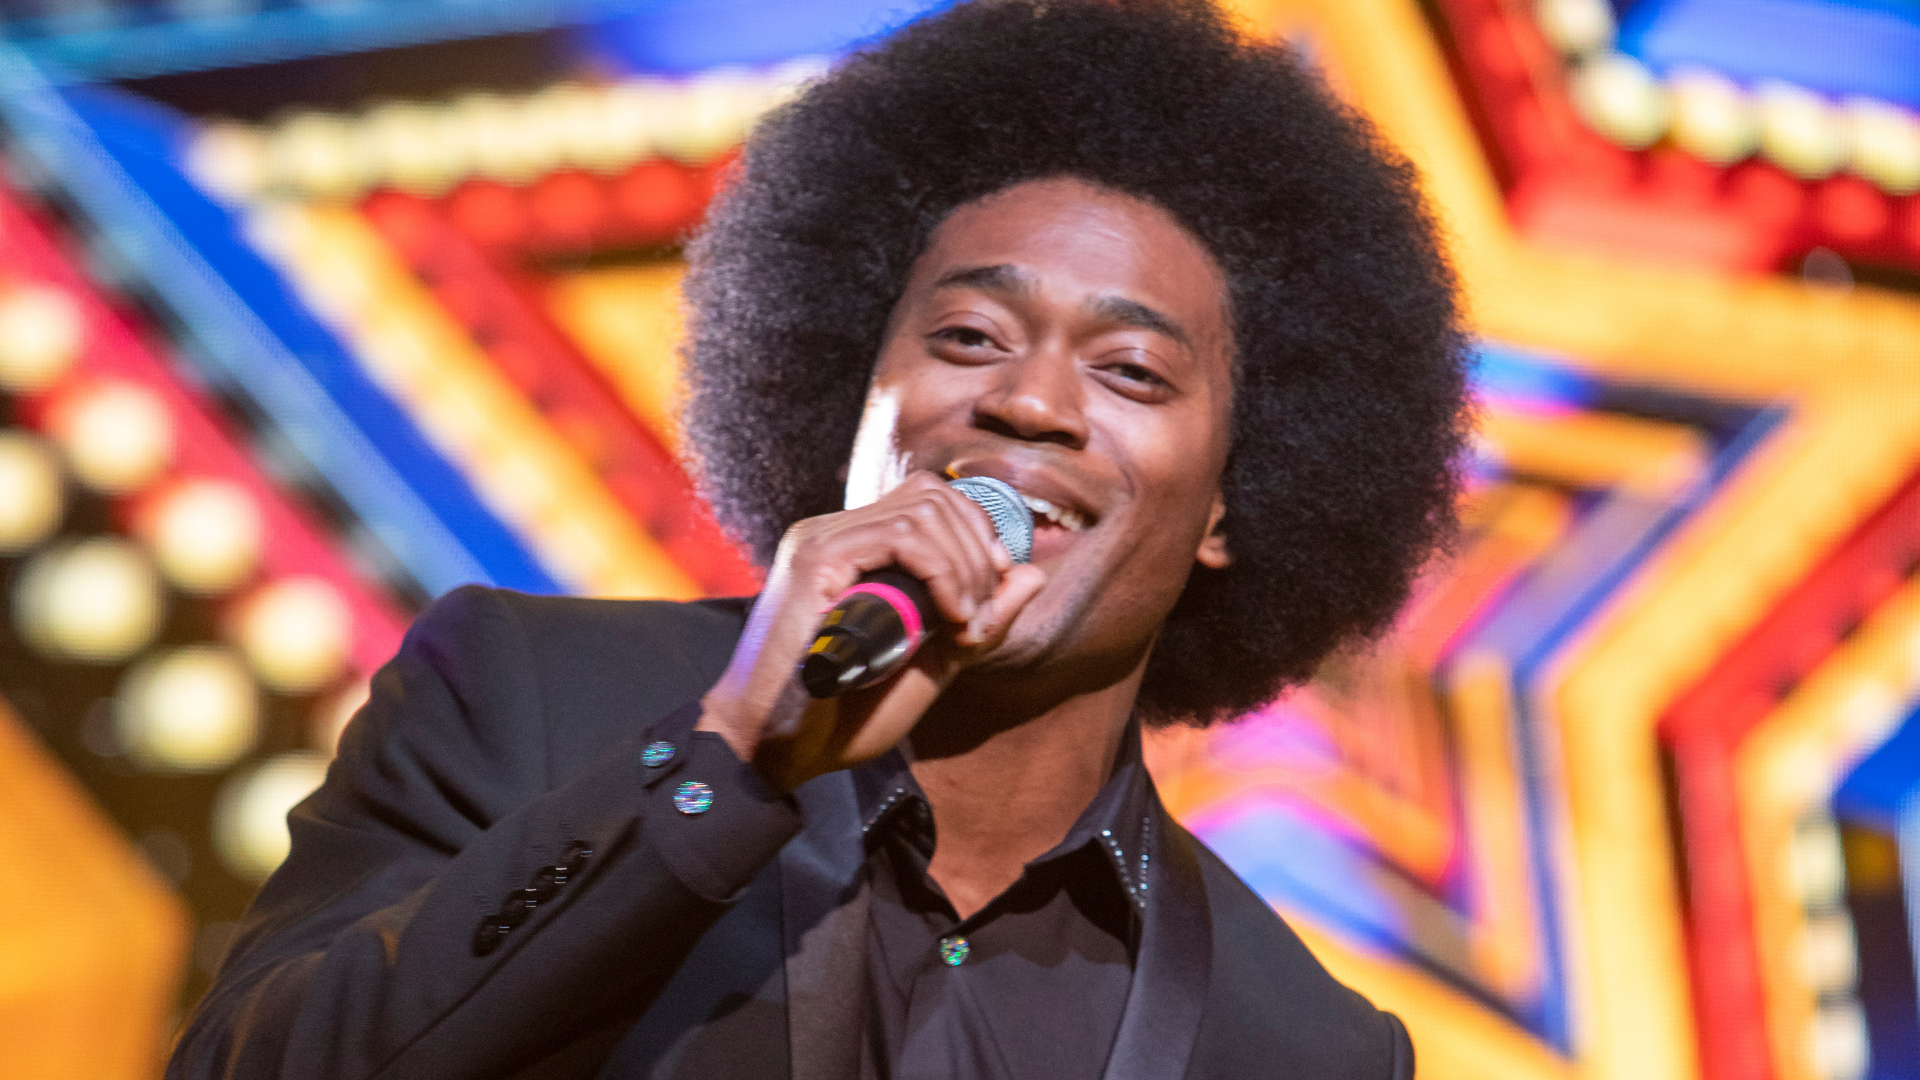 Lost in Music production shot: a close up of one of the male singers, who has a large afro and wear a smart suit